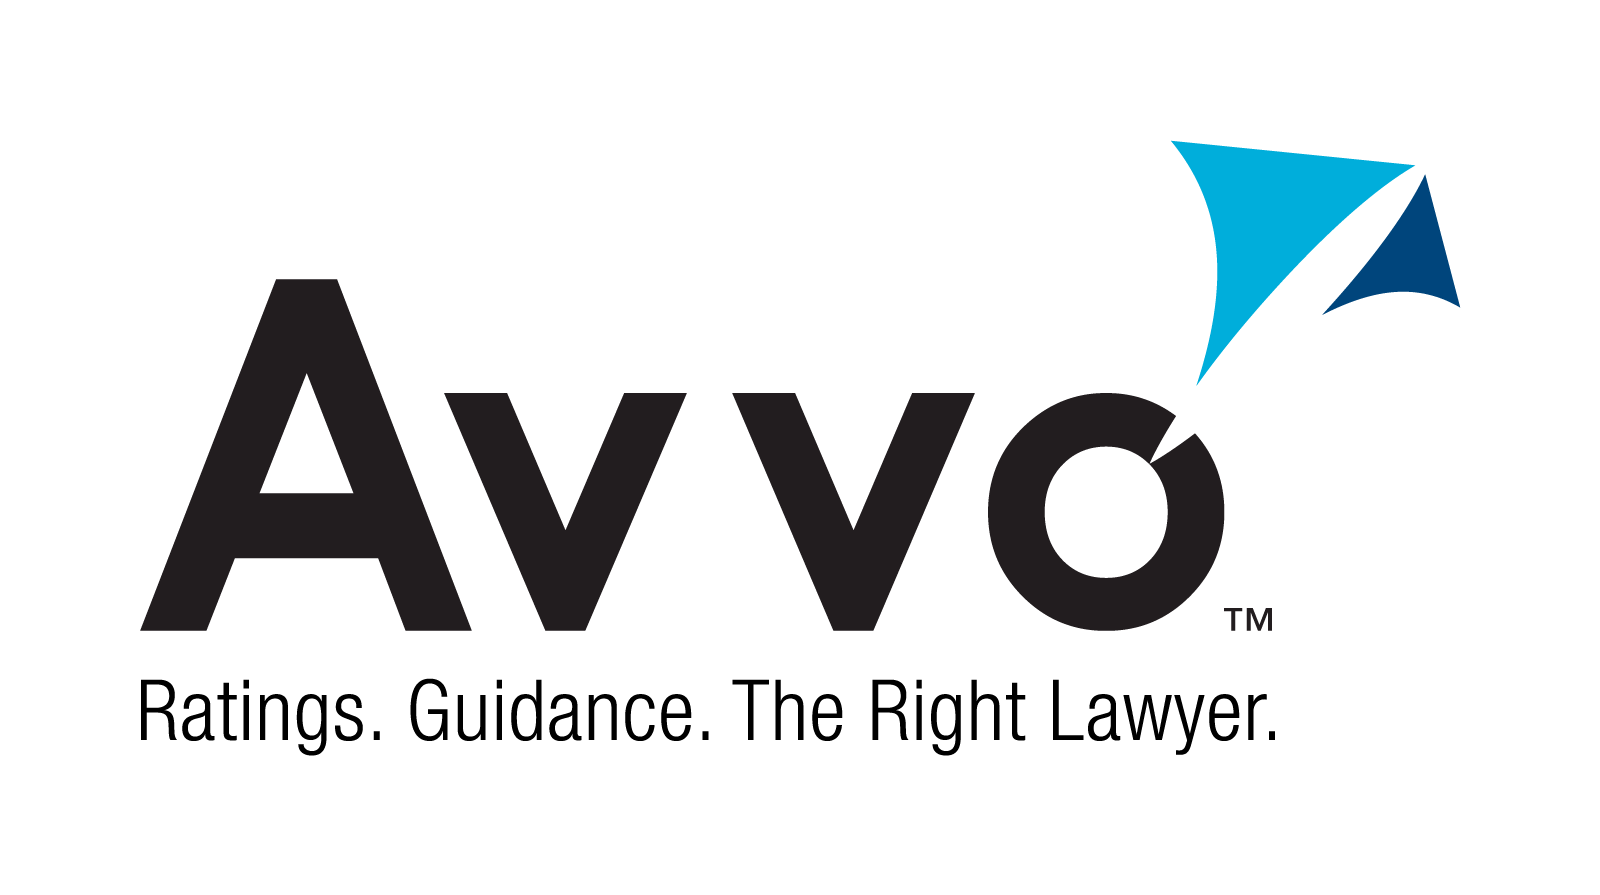 Avvo - Rate your Lawyer. Get Free Legal Advice.